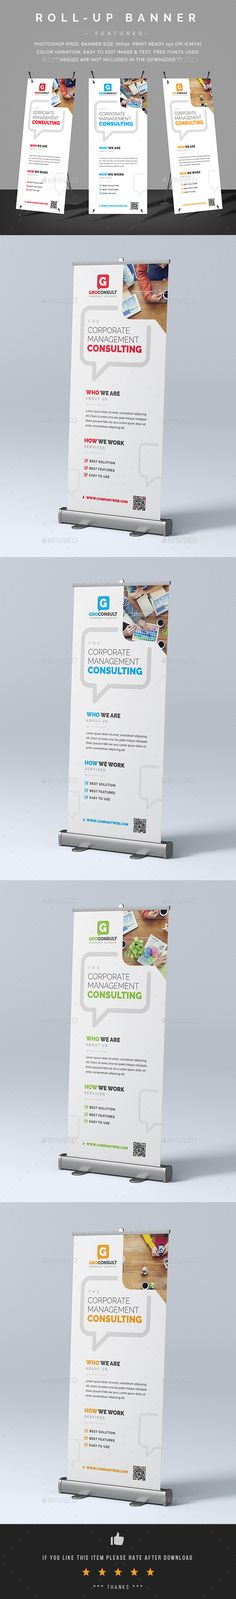 Corporate Roll-Up Banner Template PSD - Graphic Templates Cool Business Cards, Business Card Design, Roll Up Design, Ad Design, Flyer Design, Logo Design, Rollup Banner Design, Standing Banner Design, Free Printable Business Cards